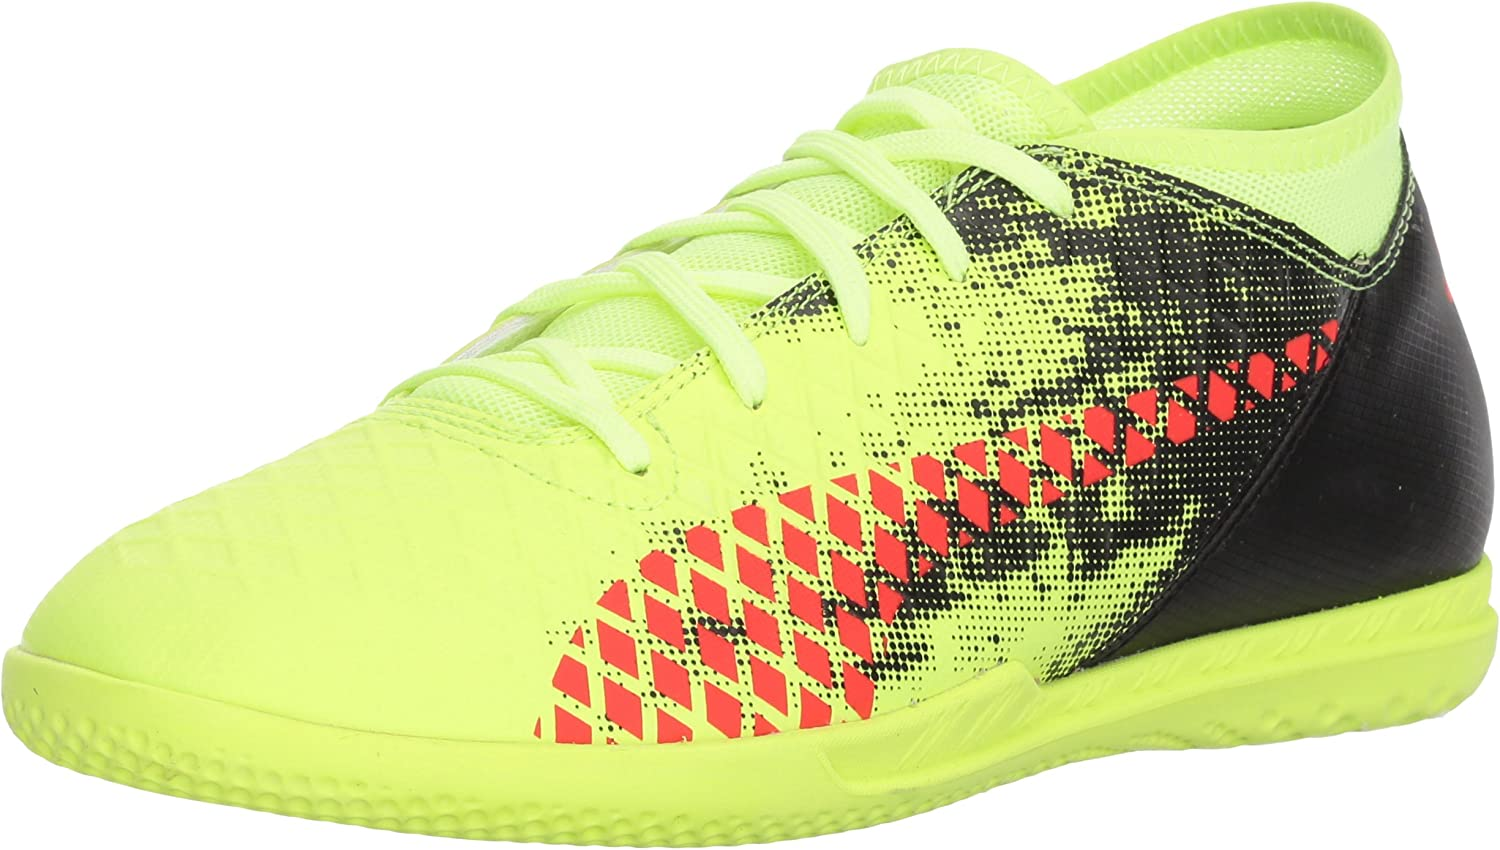 PUMA Unisex-Child Future Max Opening large release sale 43% OFF 18.4 Soccer Shoe Trainer Indoor